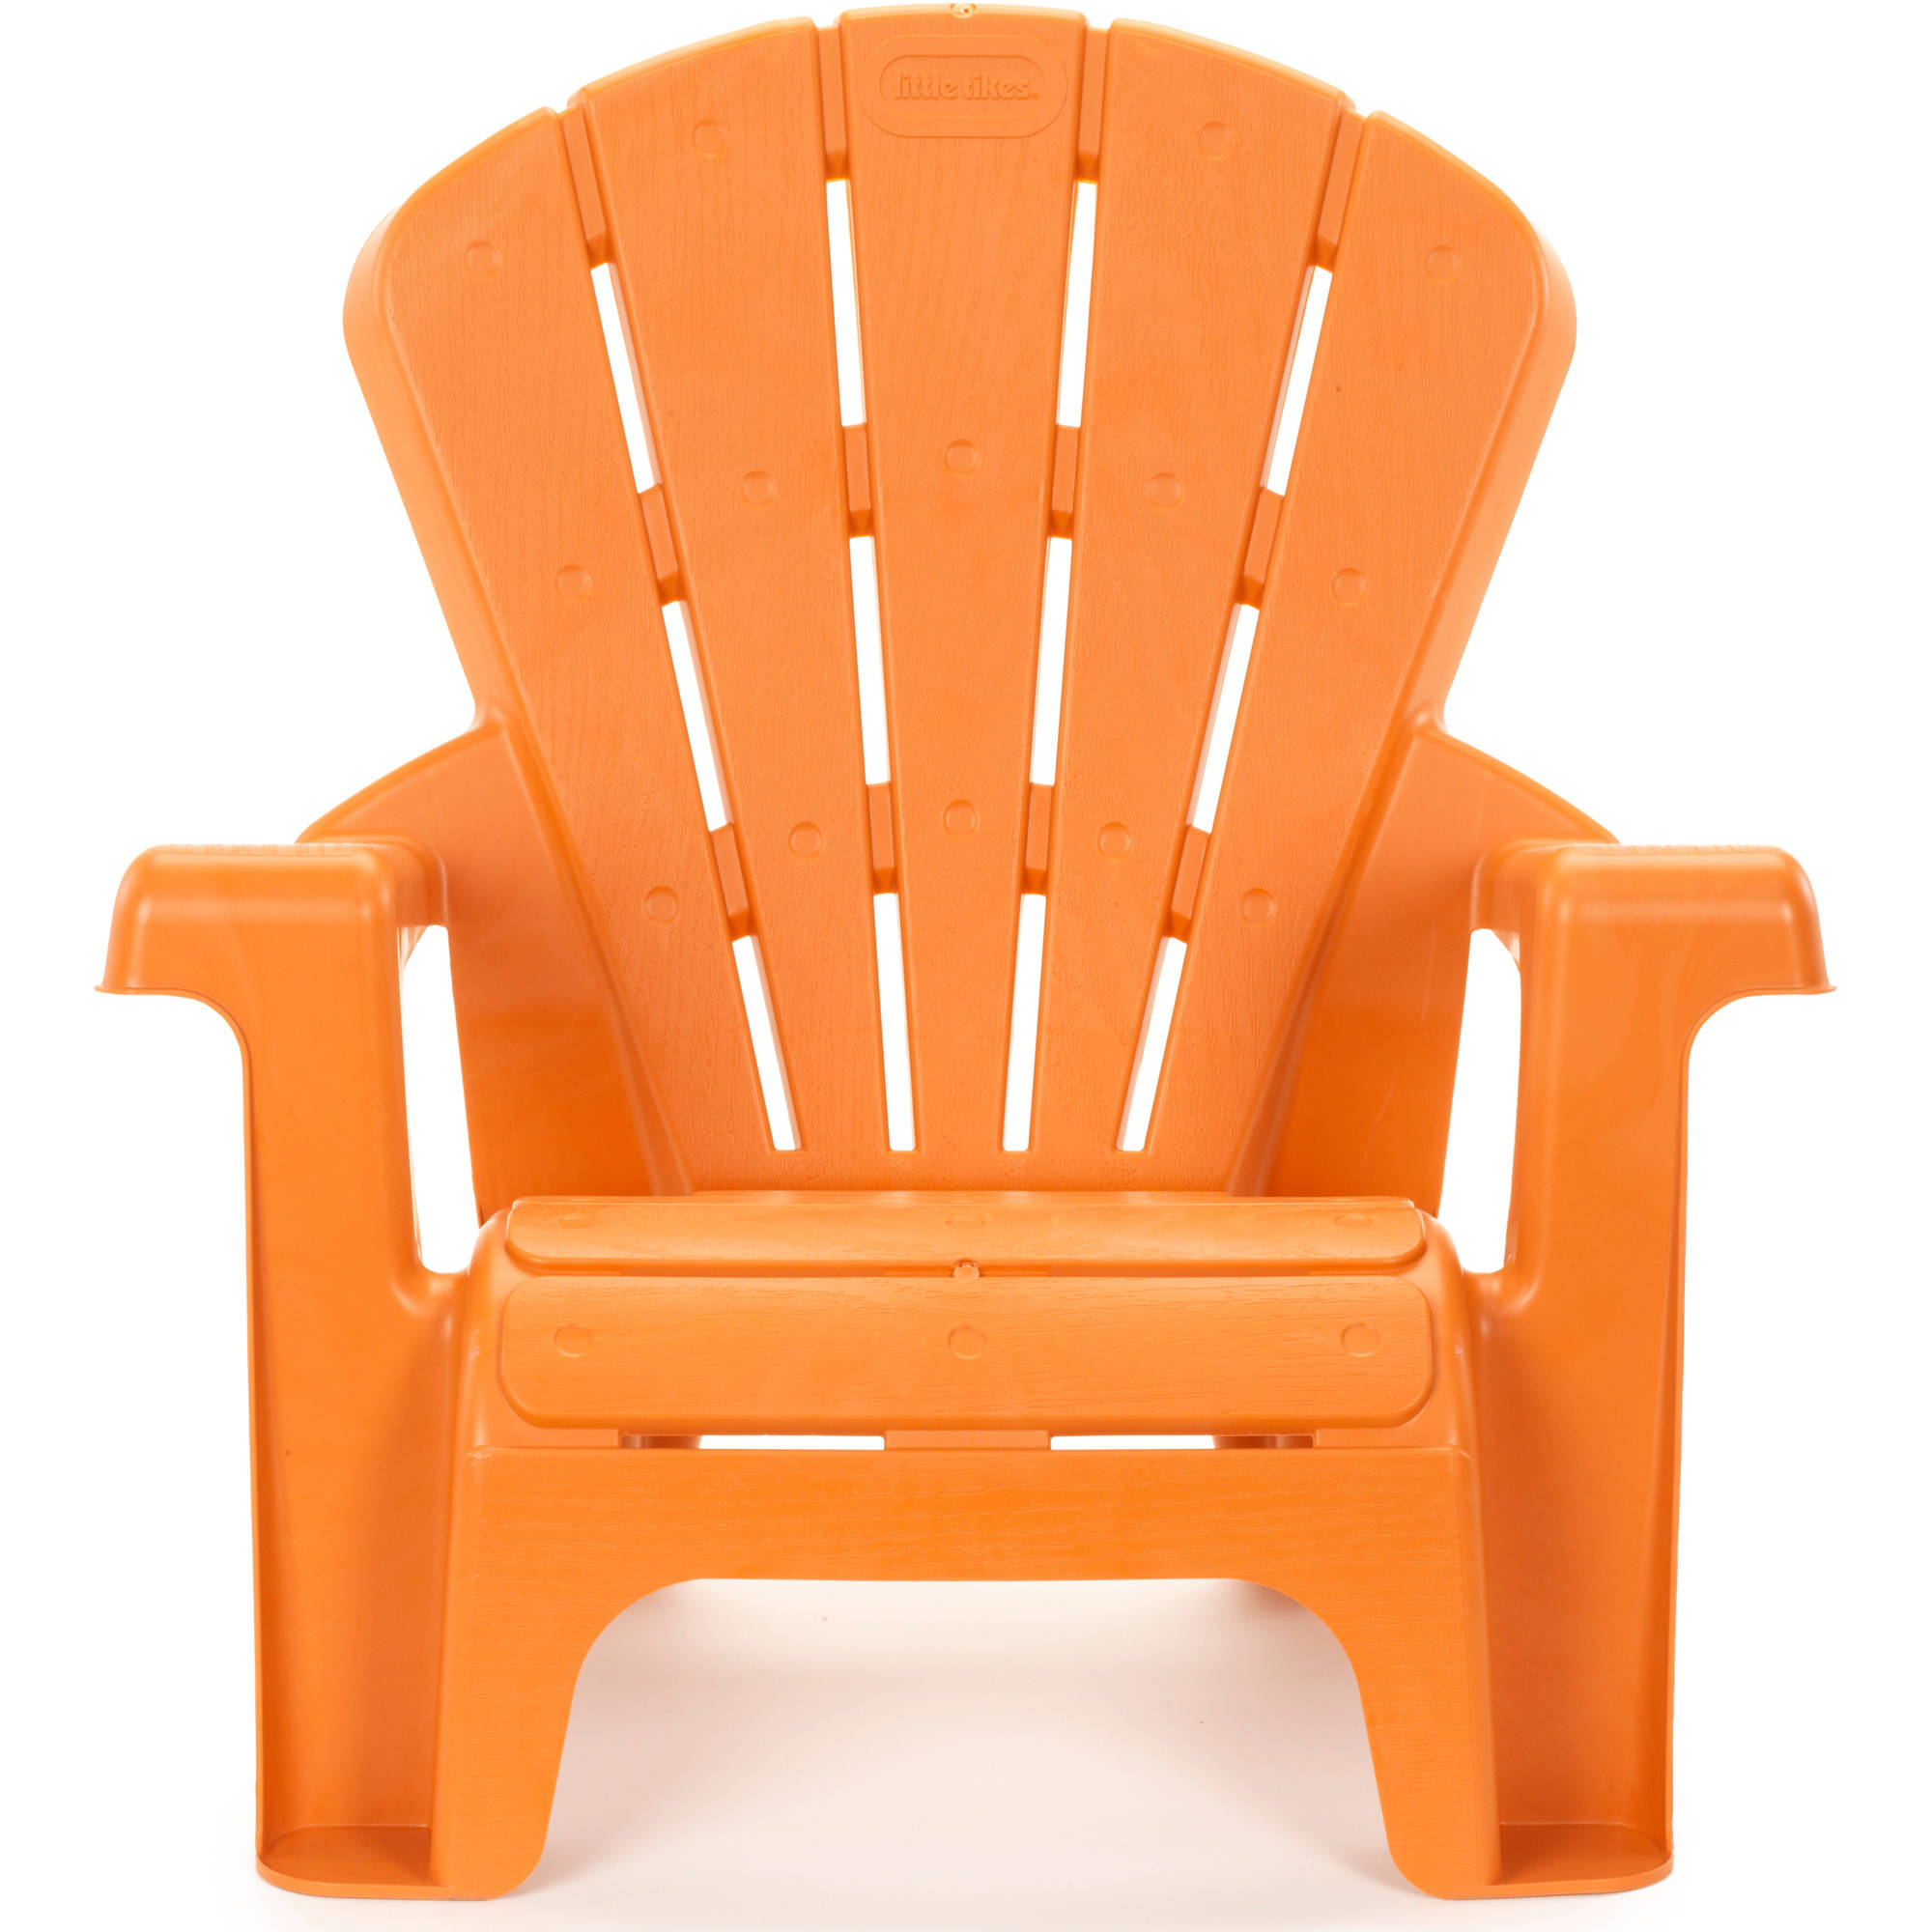 plastic adirondack chairs walmart chair covers for xmas inspirational outdoor rtty1